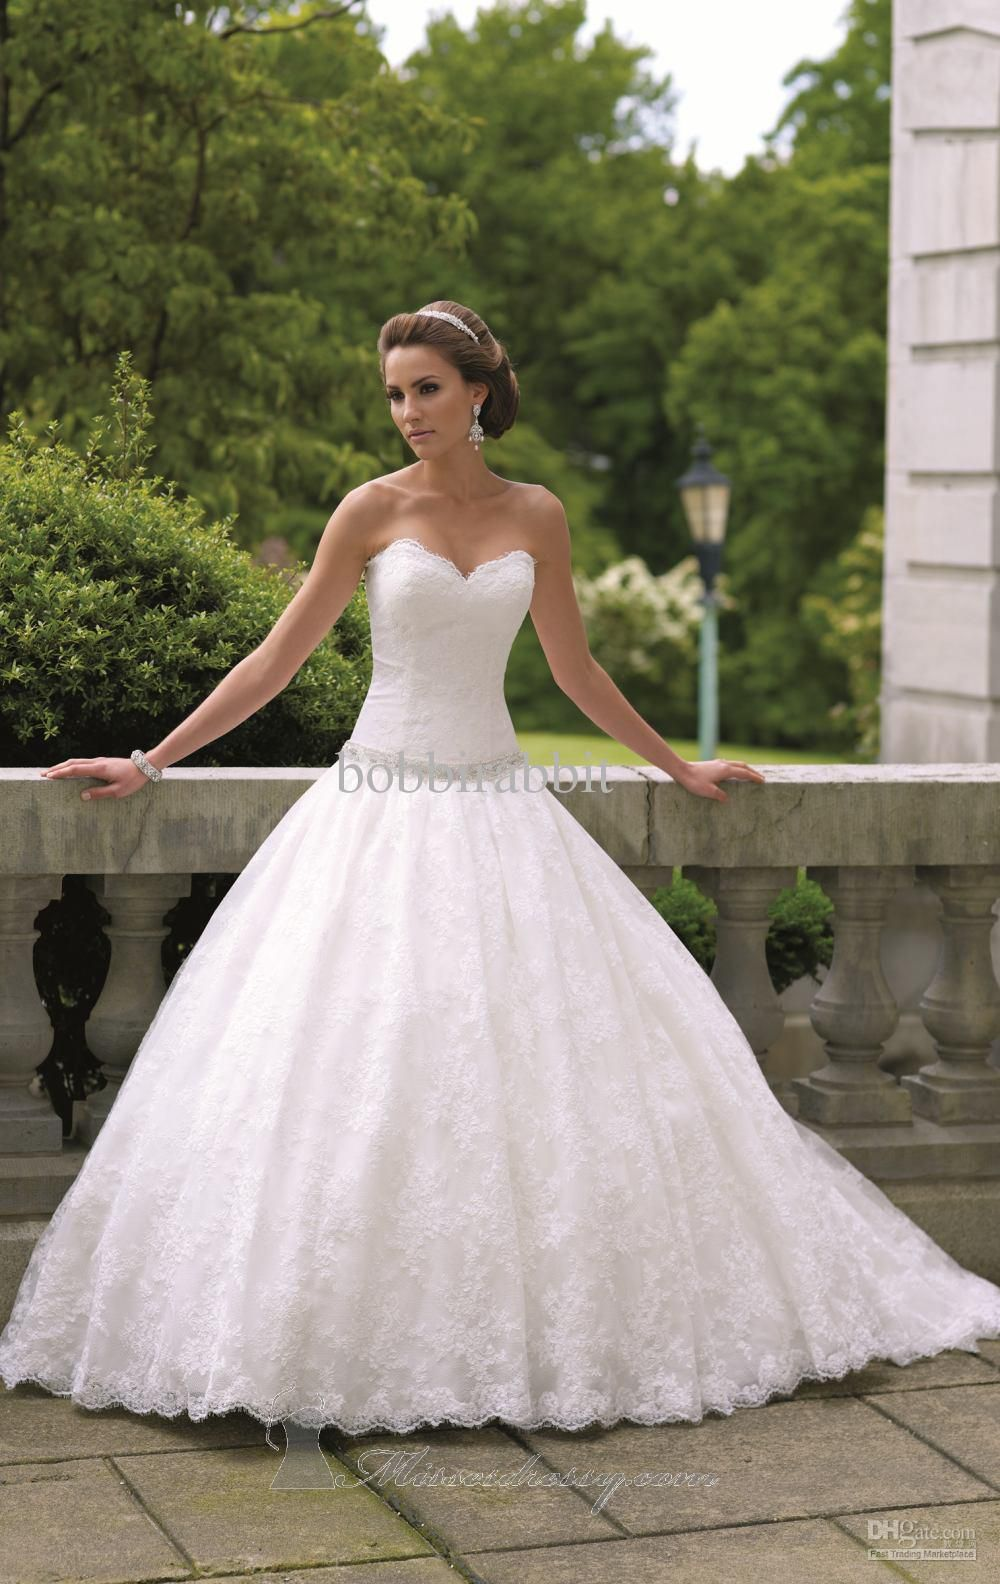 elegant wedding gown sweetheart - Google Search | Wedding things ...